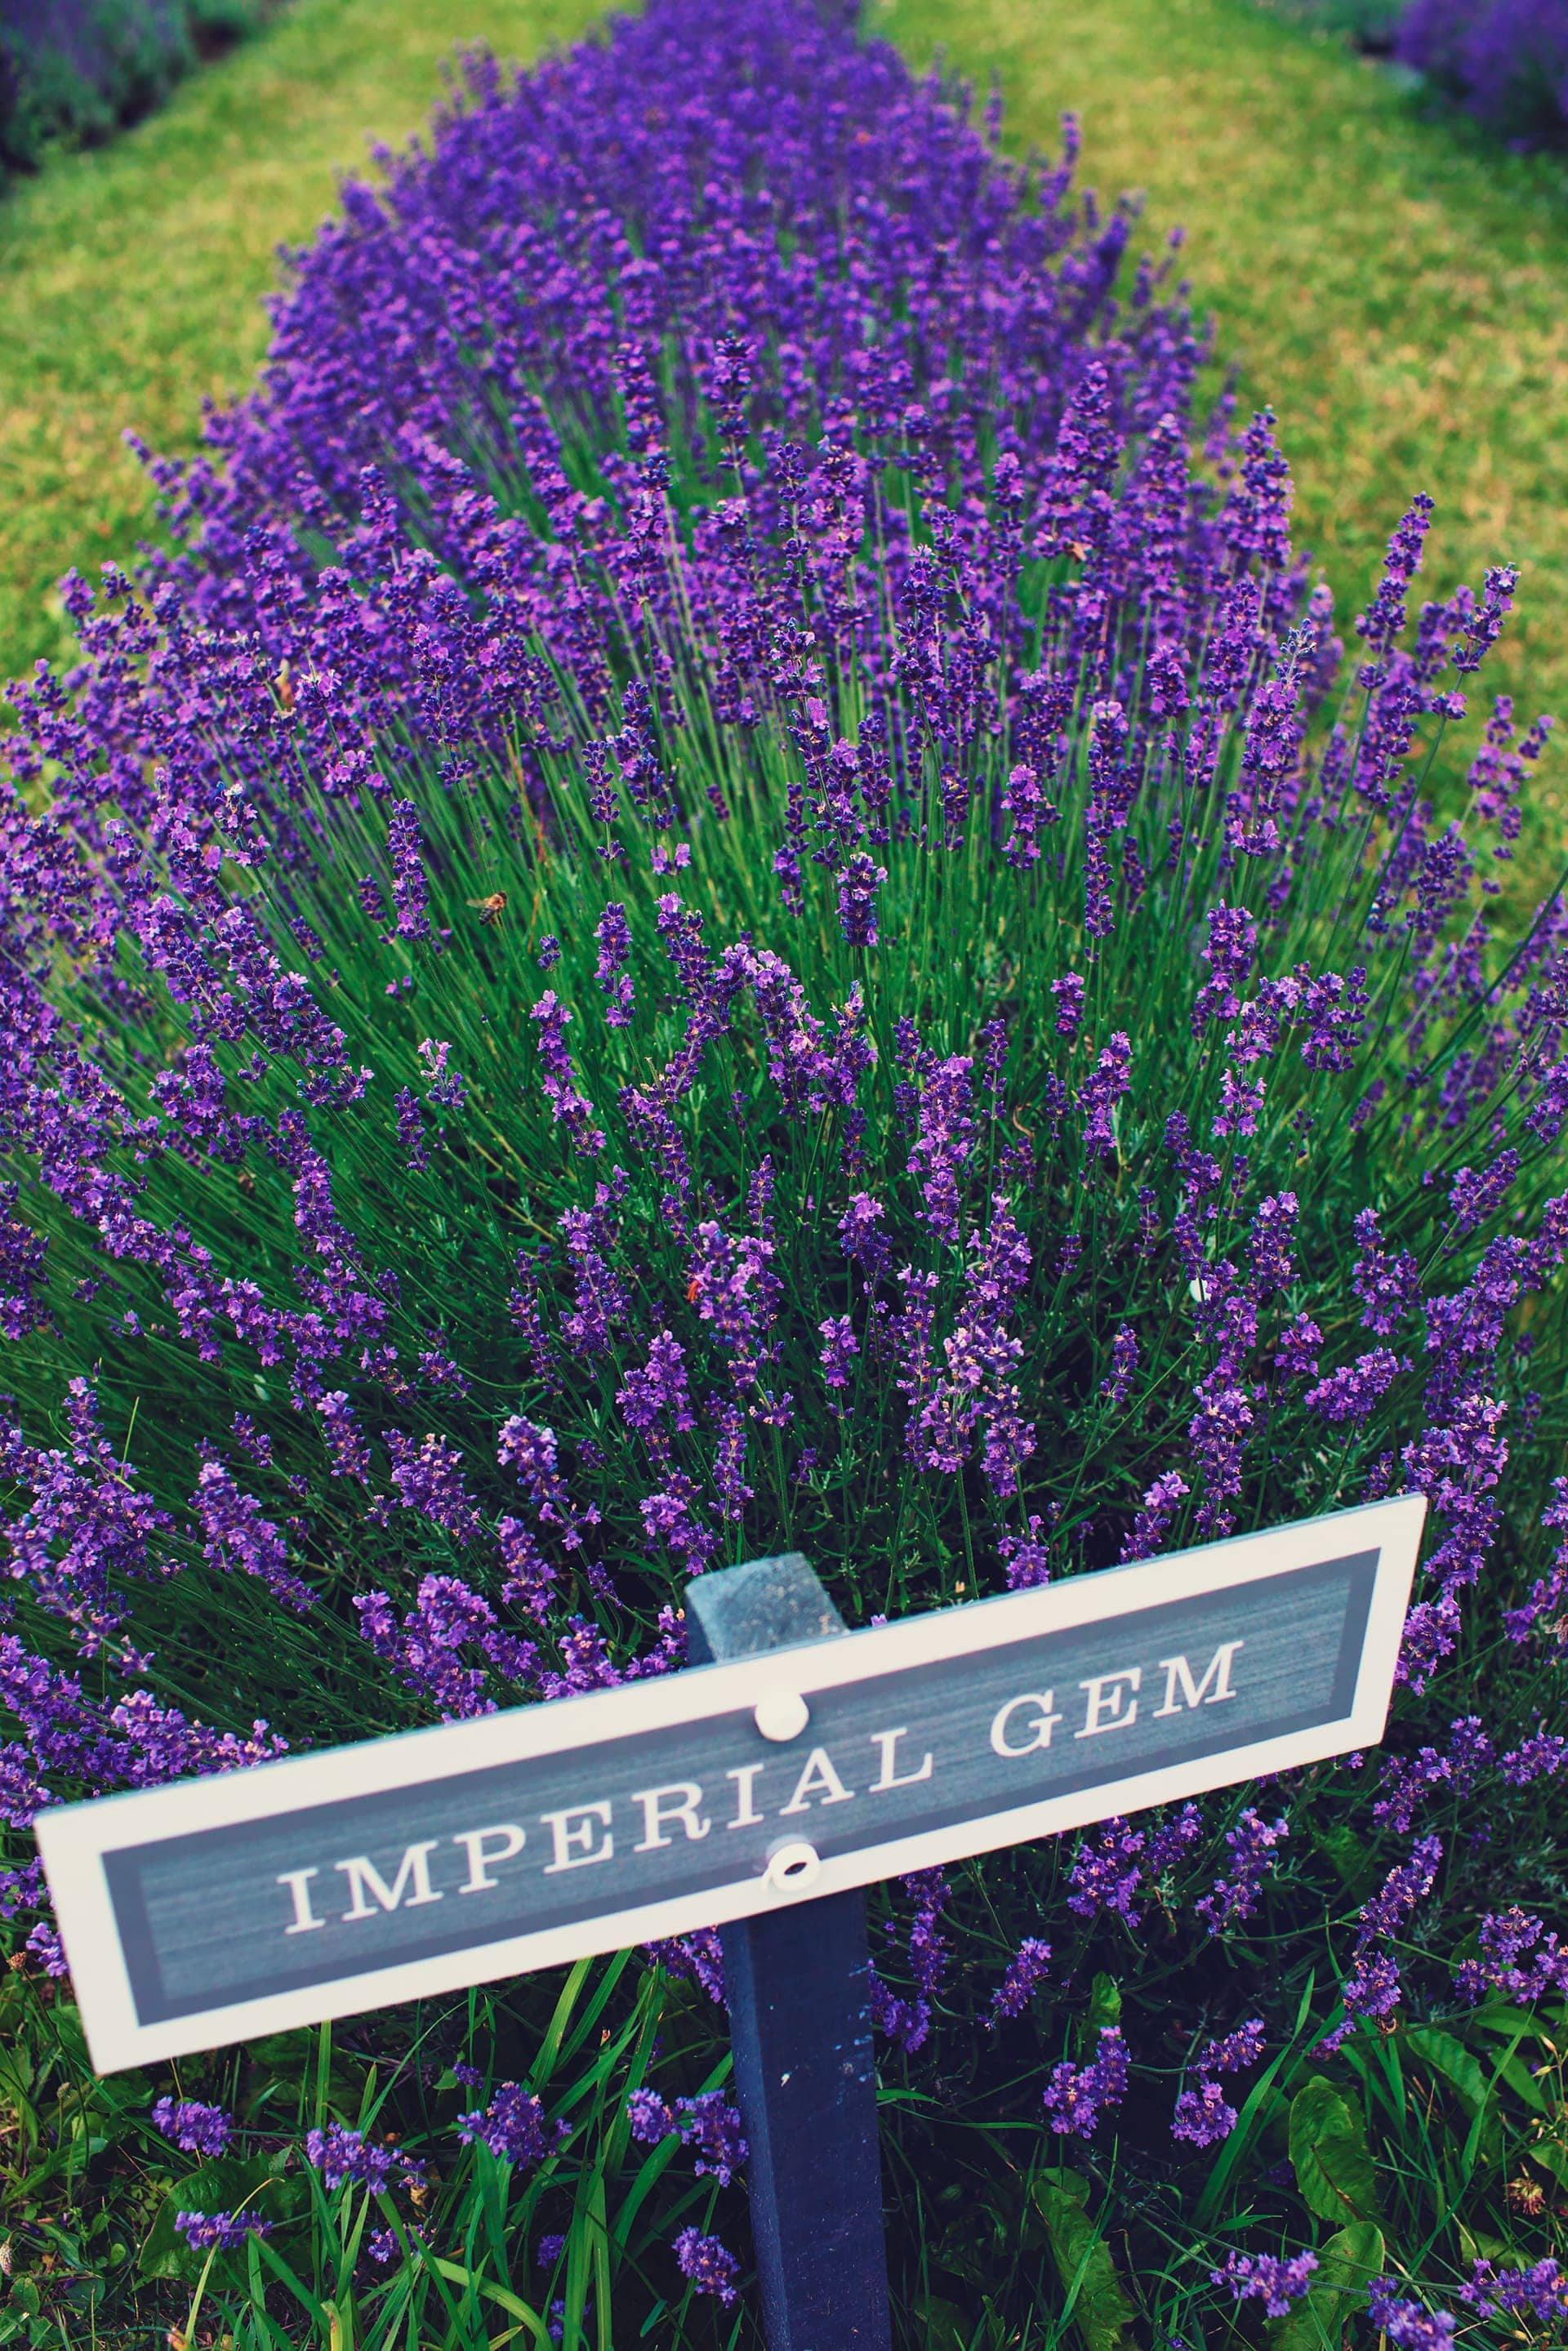 Signpost for type of lavenders at Terre Bleu Lavender Farm